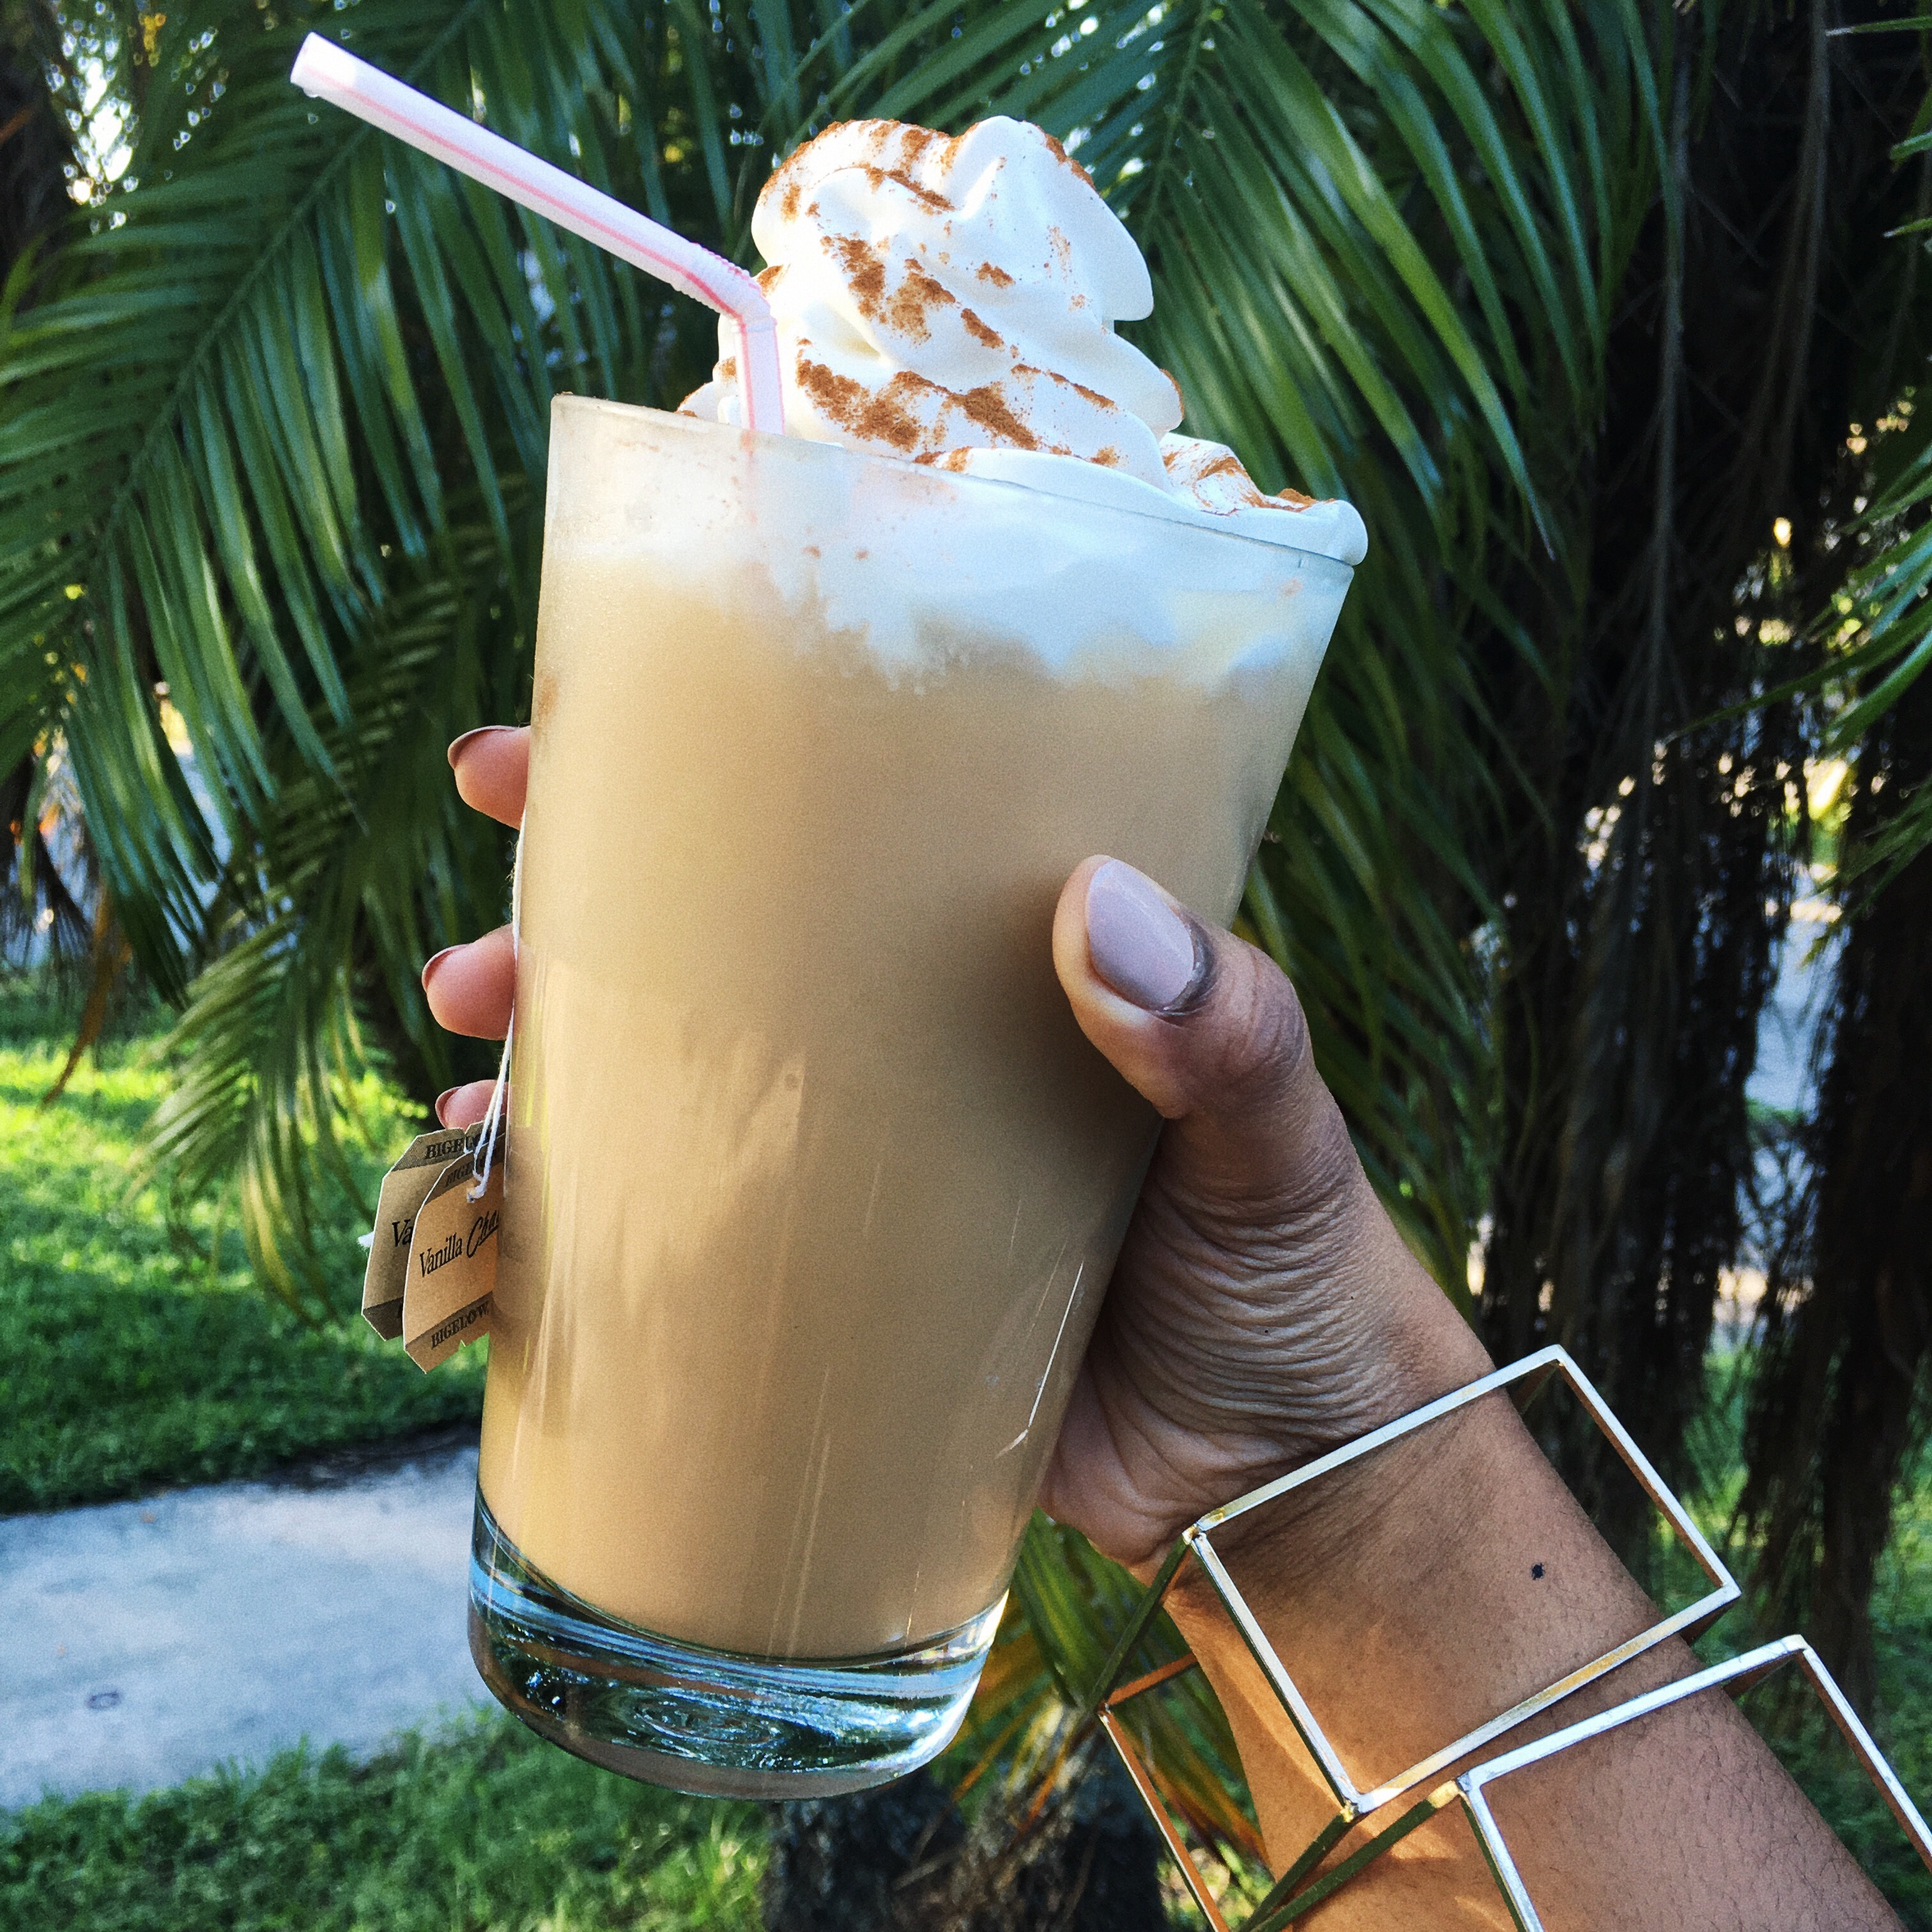 Black woman with gold geometric bracelets holding glass of Bigelow Vanilla Chai Tea with straw topped with whipped cream and cinnamon